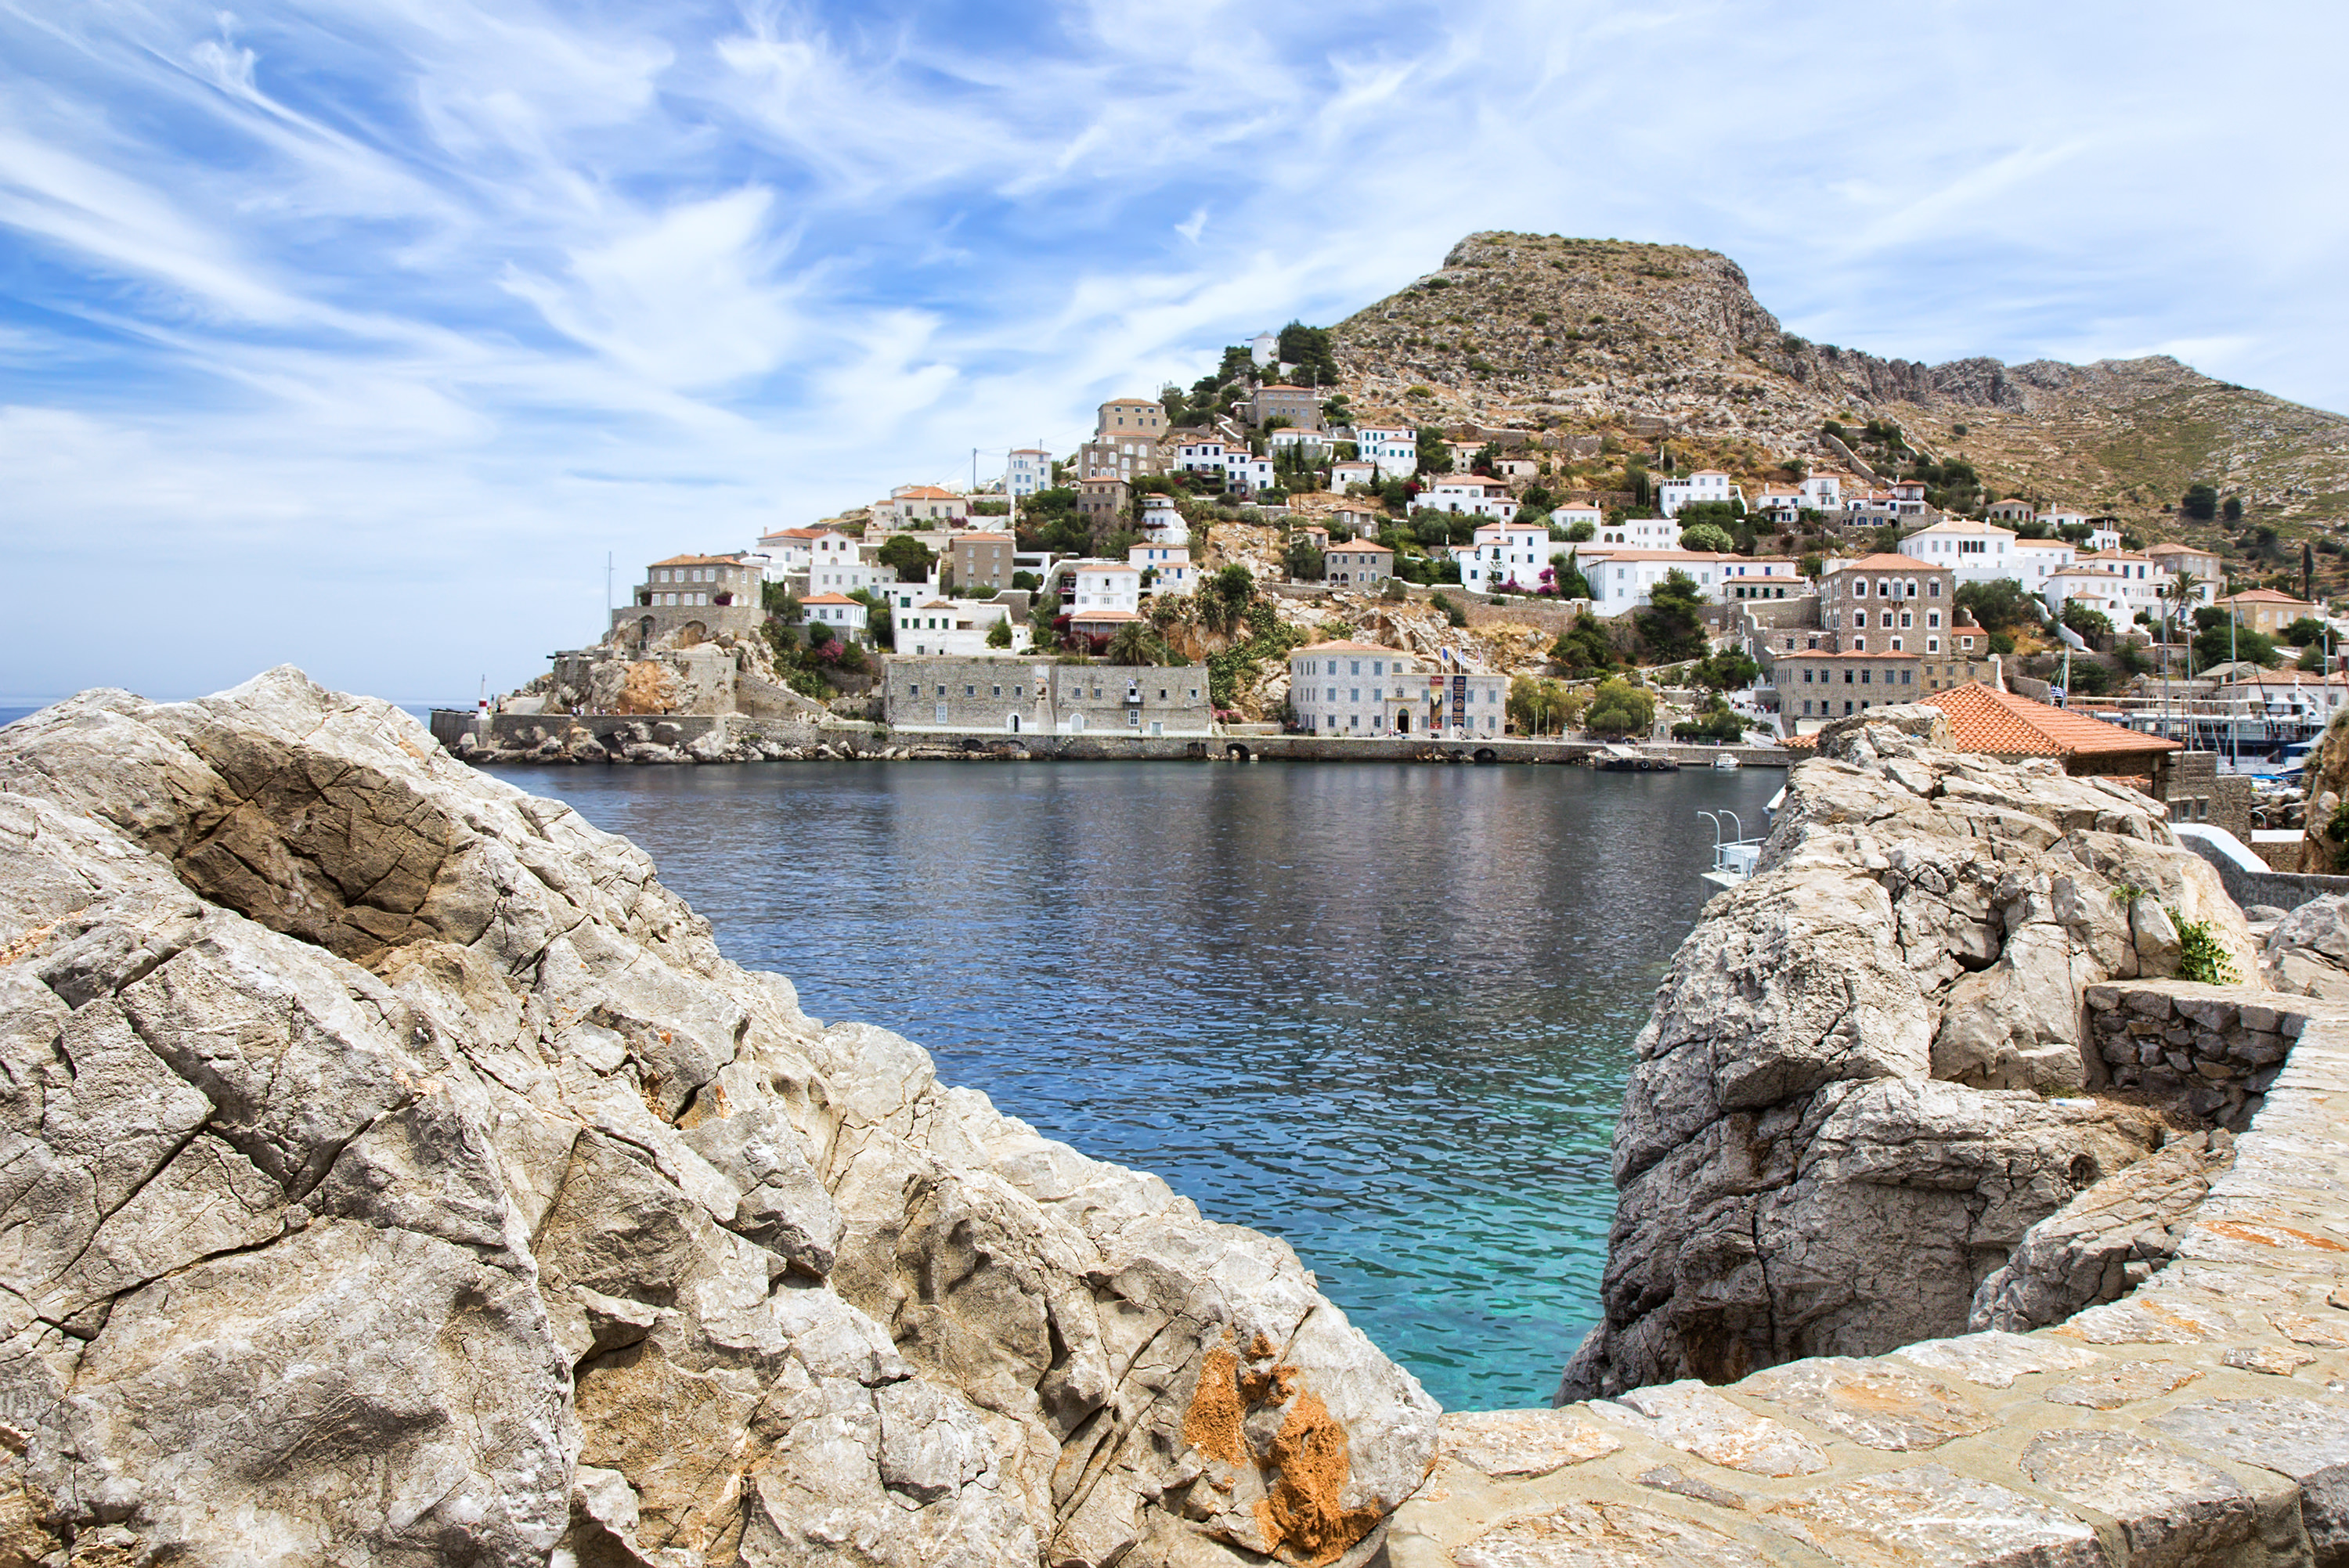 View of Hydra or Ydra, a picturesque Greek Saronic island in the Aegean Sea.